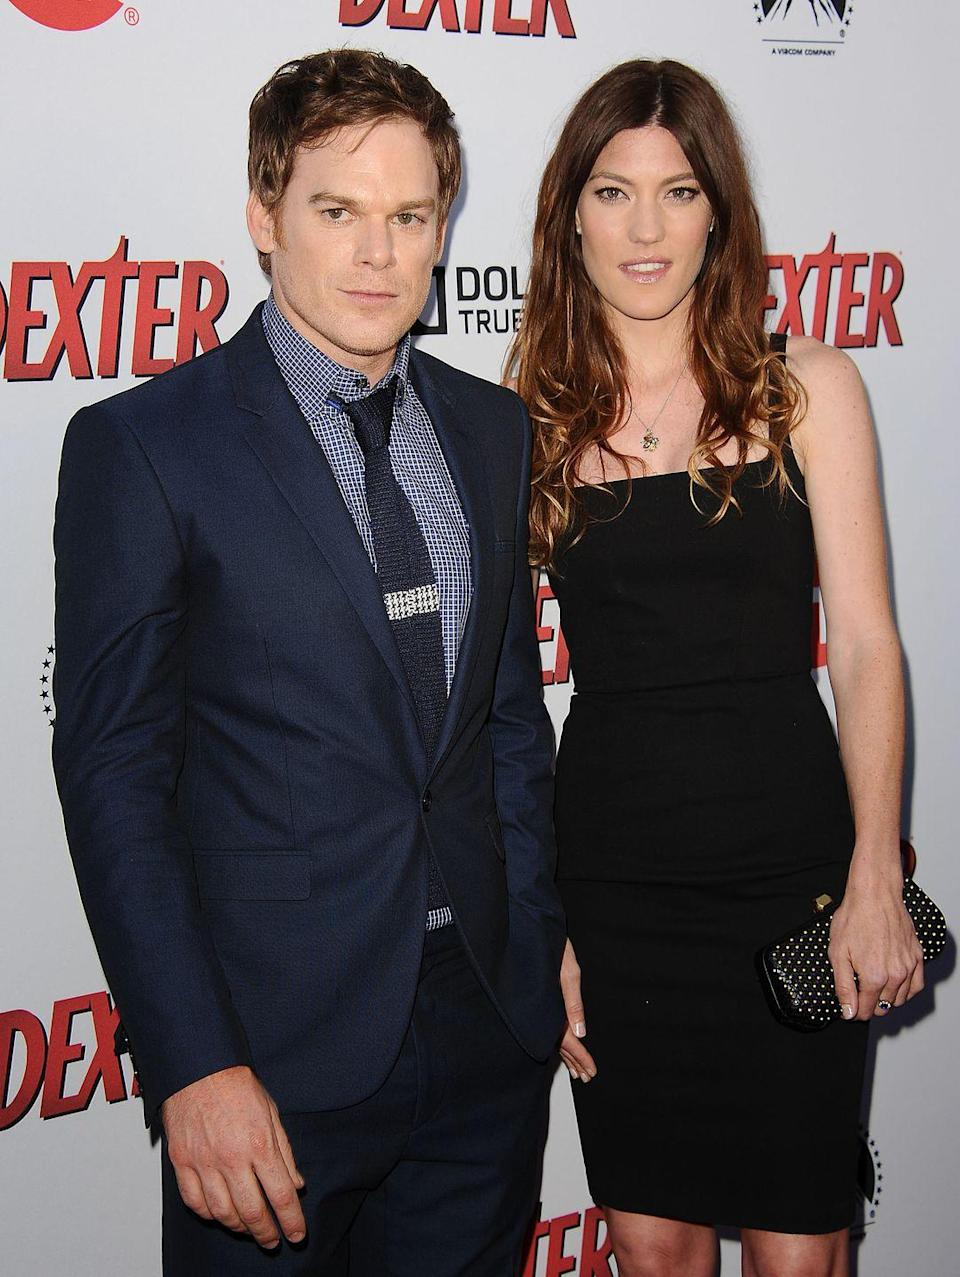 """<p>The <em>Dexter</em> siblings definitely had some abnormal chemistry on-set, and so they went on to date in real-life. After marrying in 2008, the two ended up getting a divorce <a href=""""http://www.huffingtonpost.com/2010/12/13/dexter-stars-split-michael-c-hall-jennifer-carpenter-divorce_n_796279.html"""" rel=""""nofollow noopener"""" target=""""_blank"""" data-ylk=""""slk:in 2011"""" class=""""link rapid-noclick-resp"""">in 2011</a>. But, they had to set it aside and keep up their contracts by continuing to work together until the show's end in 2013.</p>"""